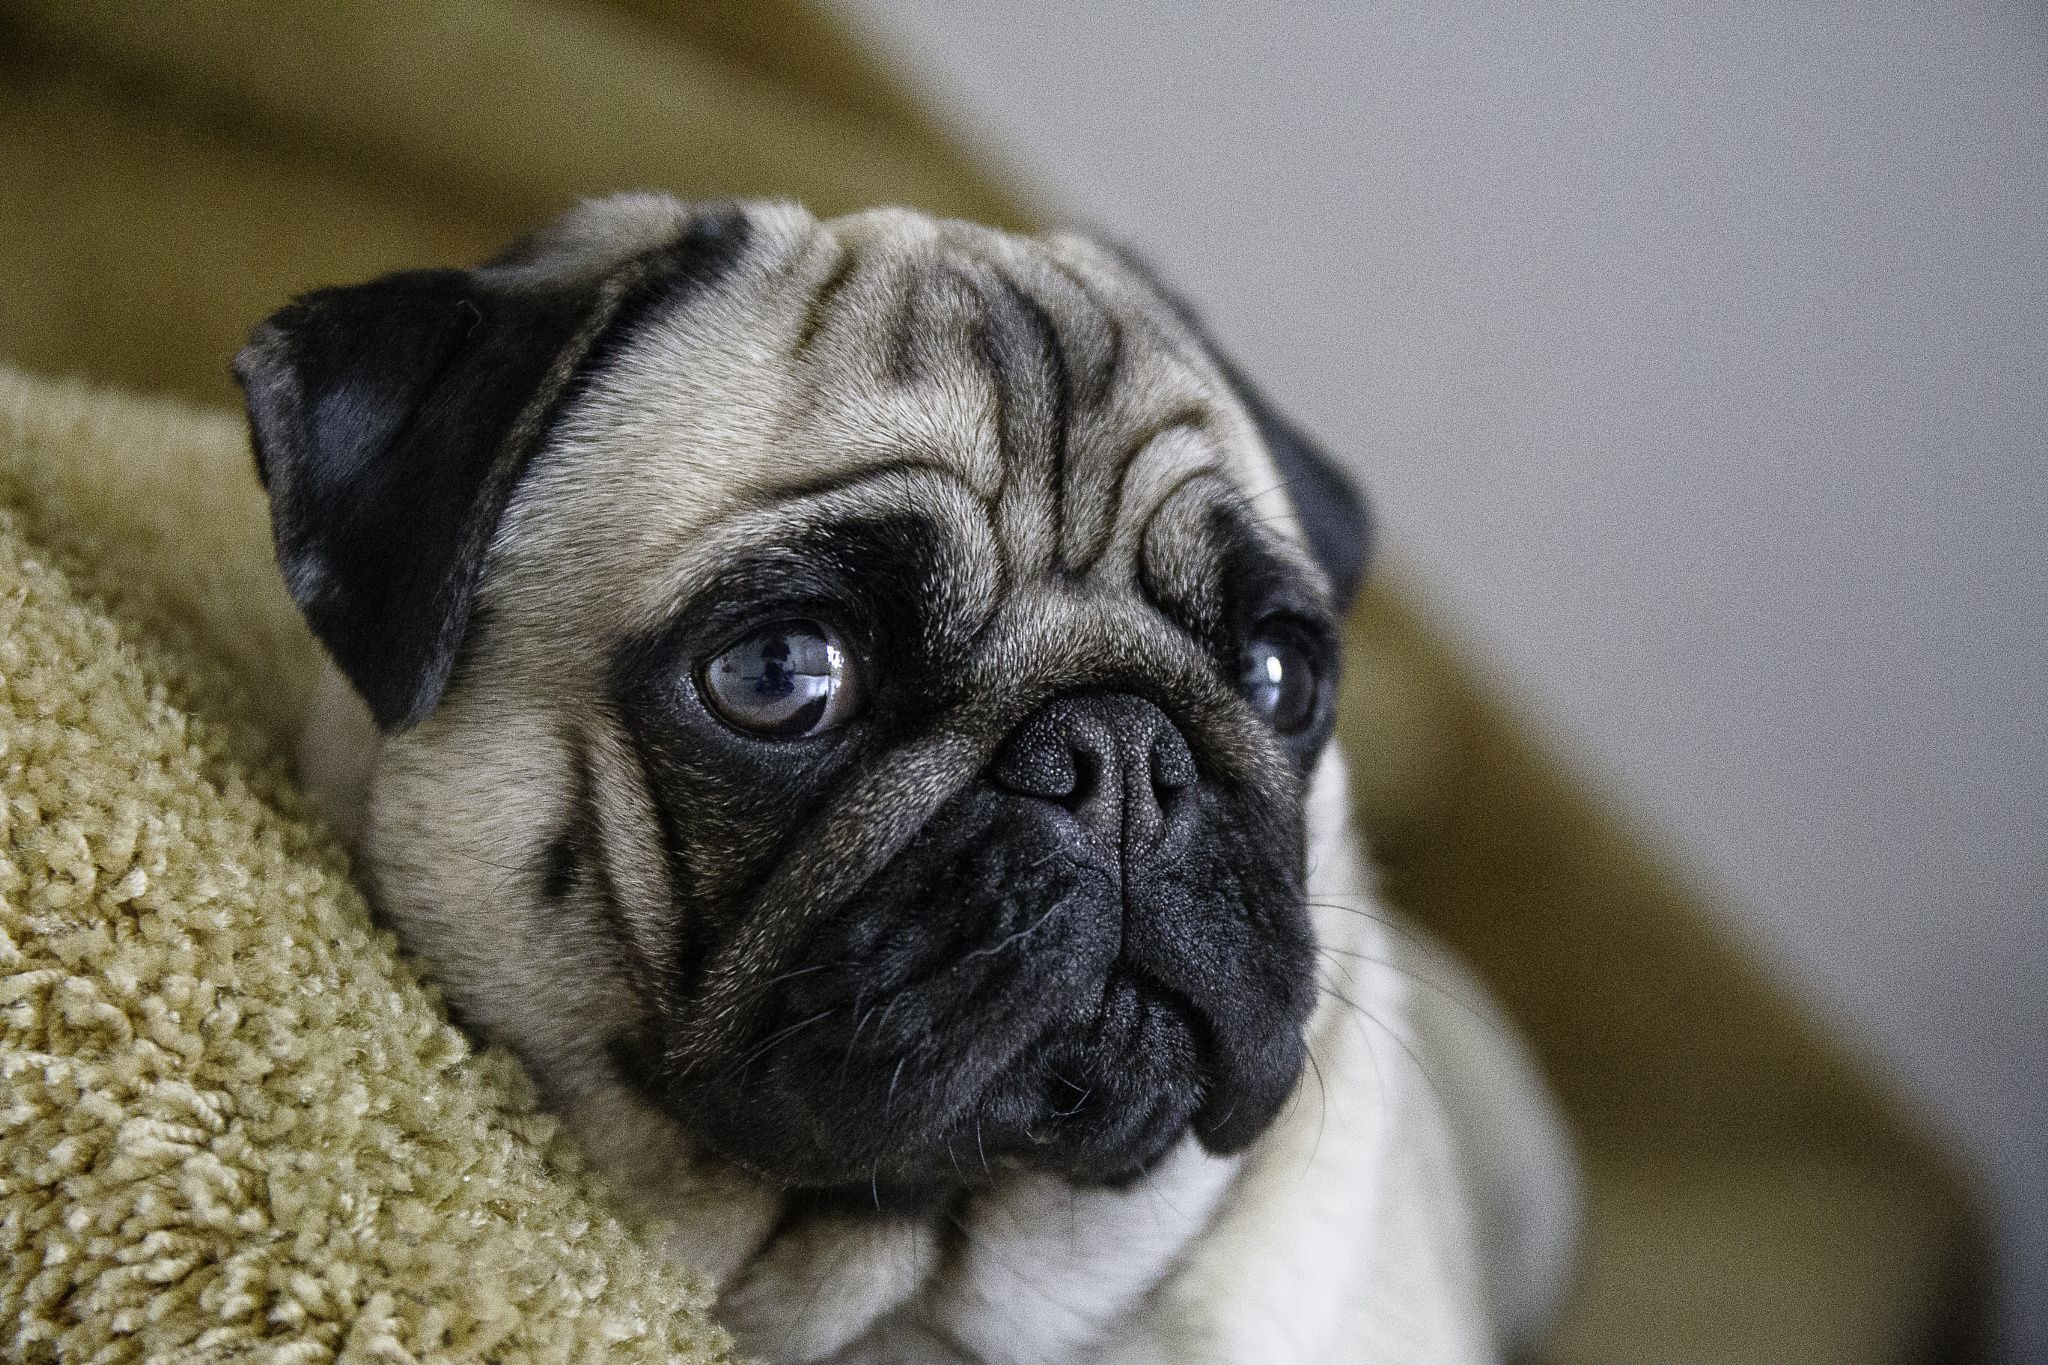 Pin By Samantha Farler On Puppies Pug Breed Pugs Dogs